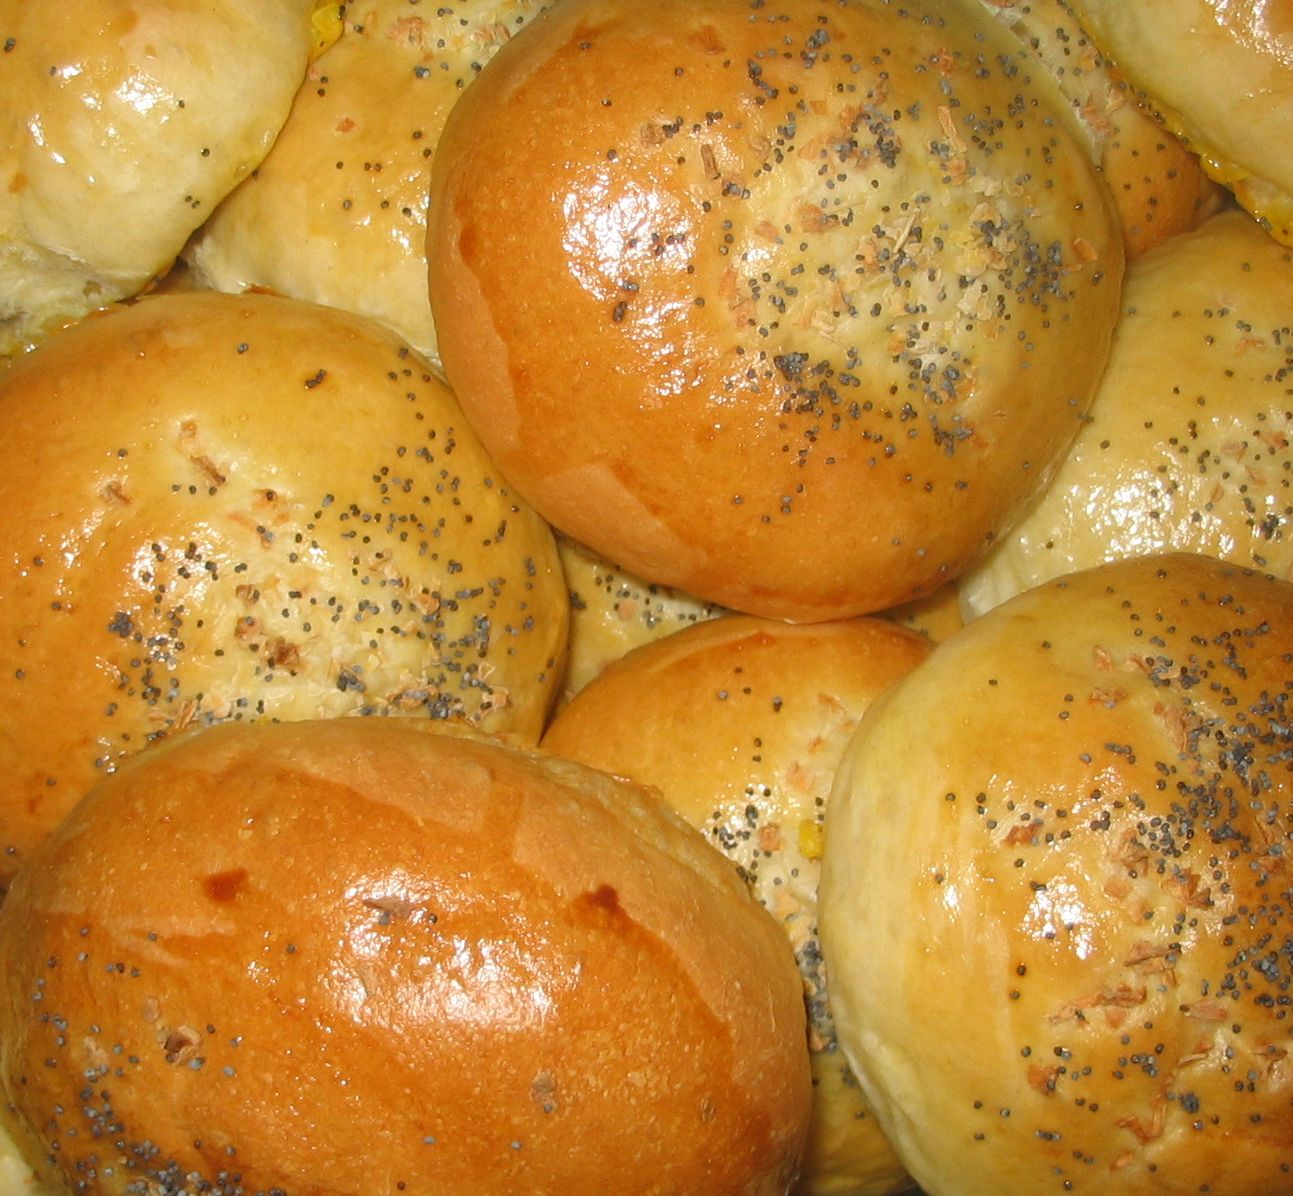 How To Make Poppy Seed Hot Dog Buns